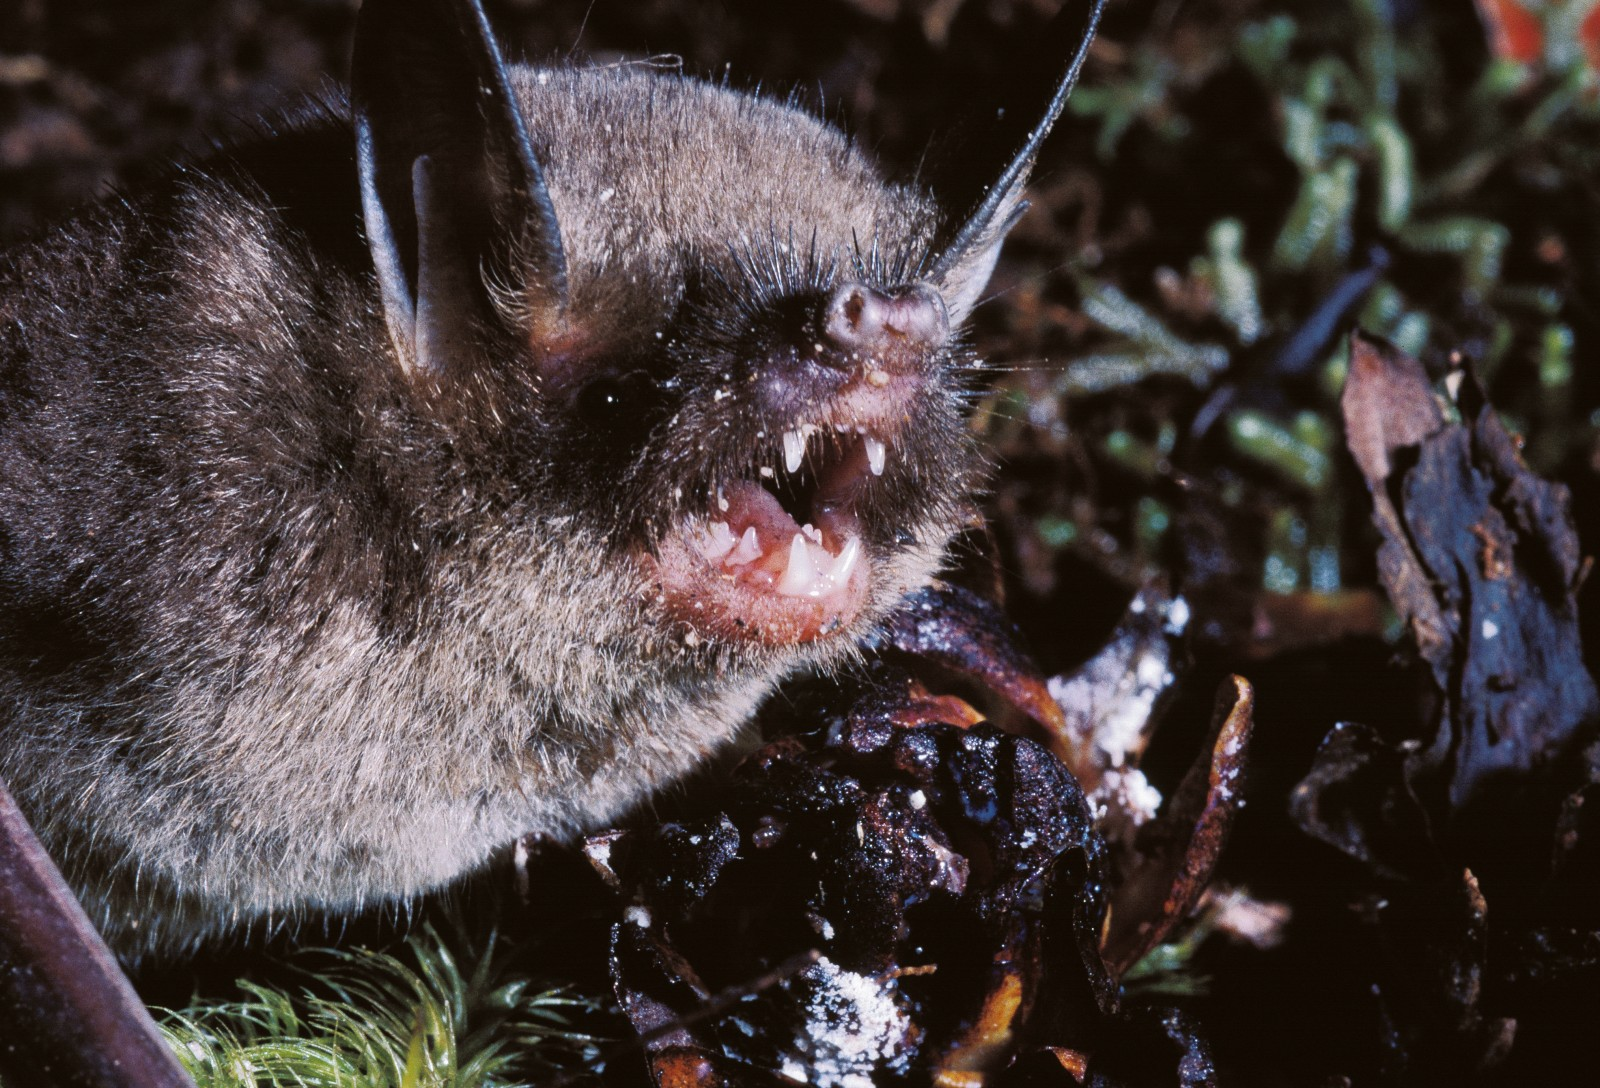 You'd be screaming too if you were this ugly and infested with batflies. New Zealand's short-tailed bat evolved in isolation from the rest of the world's bat community. With only birds, lizards and weta as competing megafauna, the short-tailed bat aquired some unusual habits, including a propensity to forage on the forest floor like a mouse. With the arrival of rats and other better equipped mammals and the deforestation of much of New Zealand, this unlikely bat is now rare.